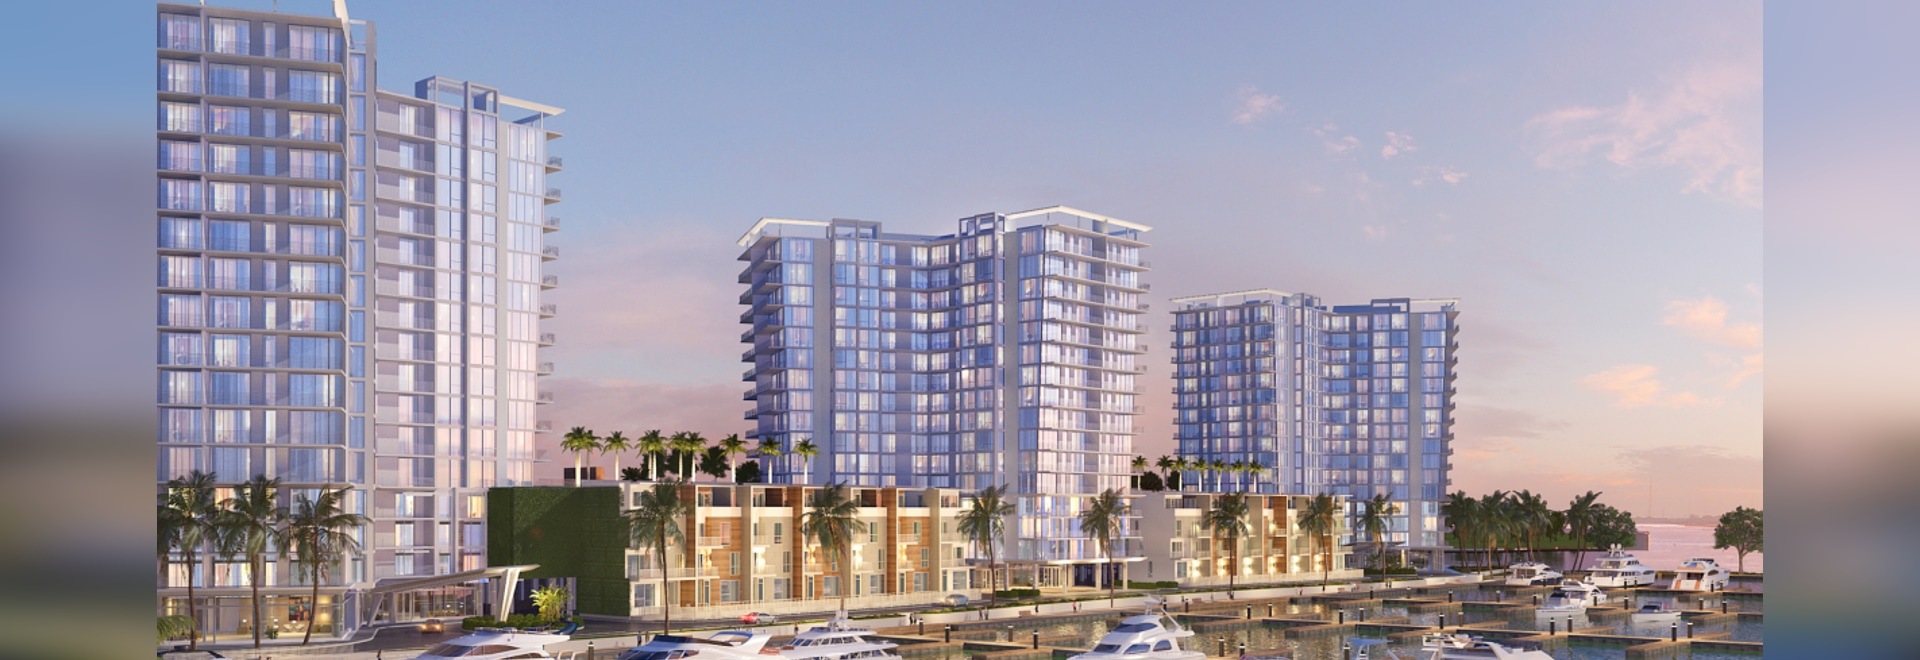 The marina is part of the Westshore Marina District. Courtesy of BTI Partners.